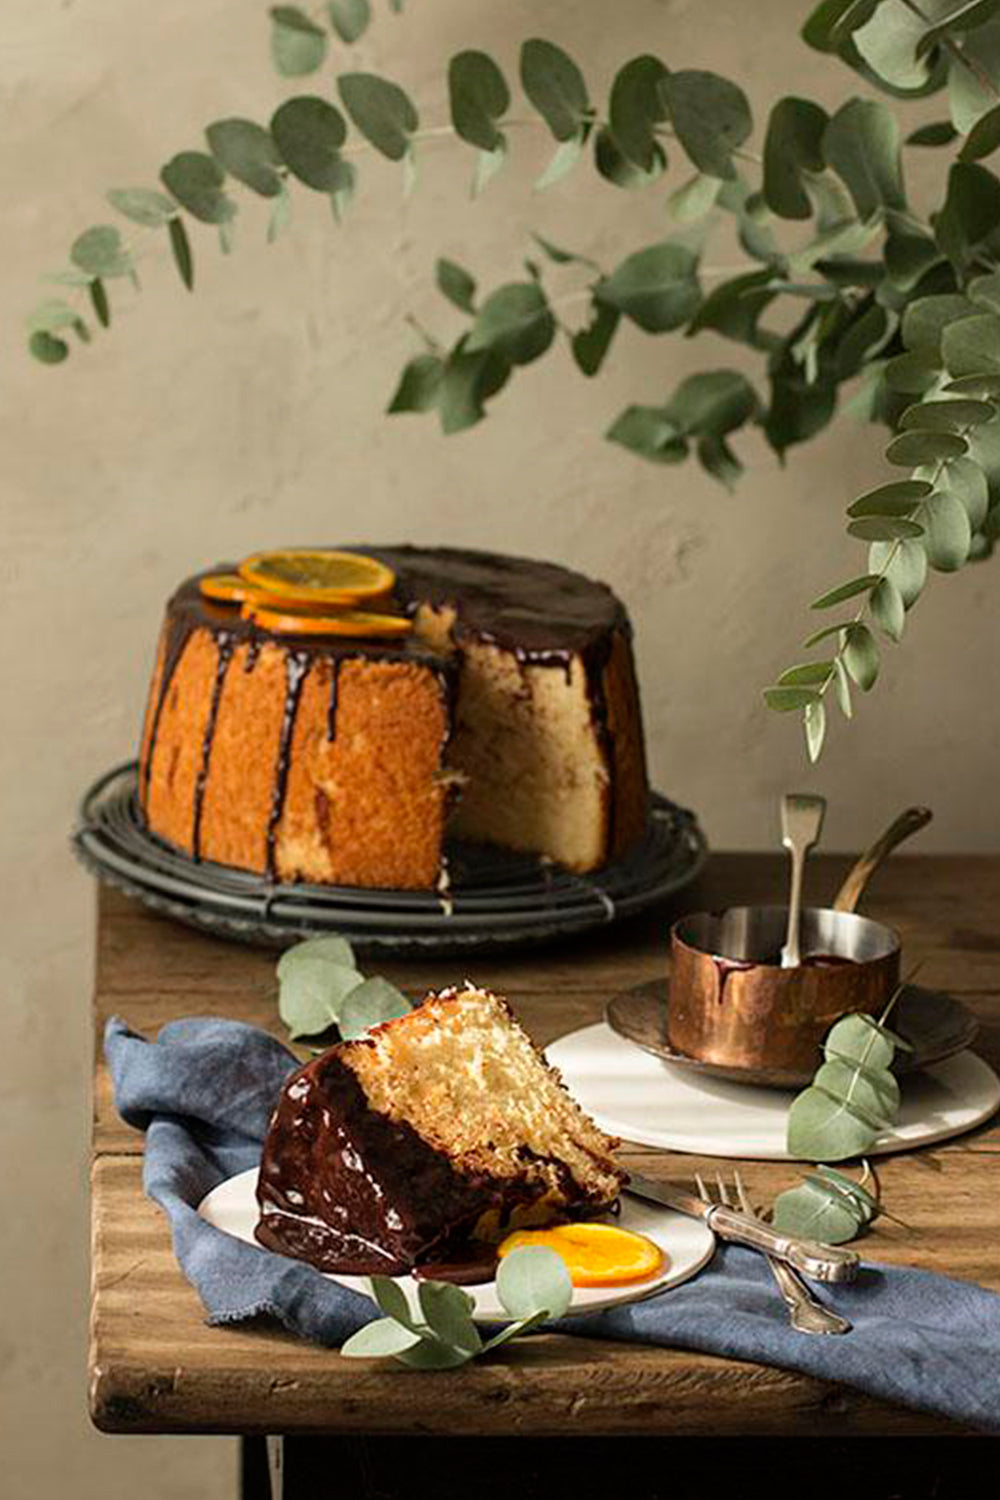 Orange chiffon cake con glaseado de chocolate y naranjas confitadas